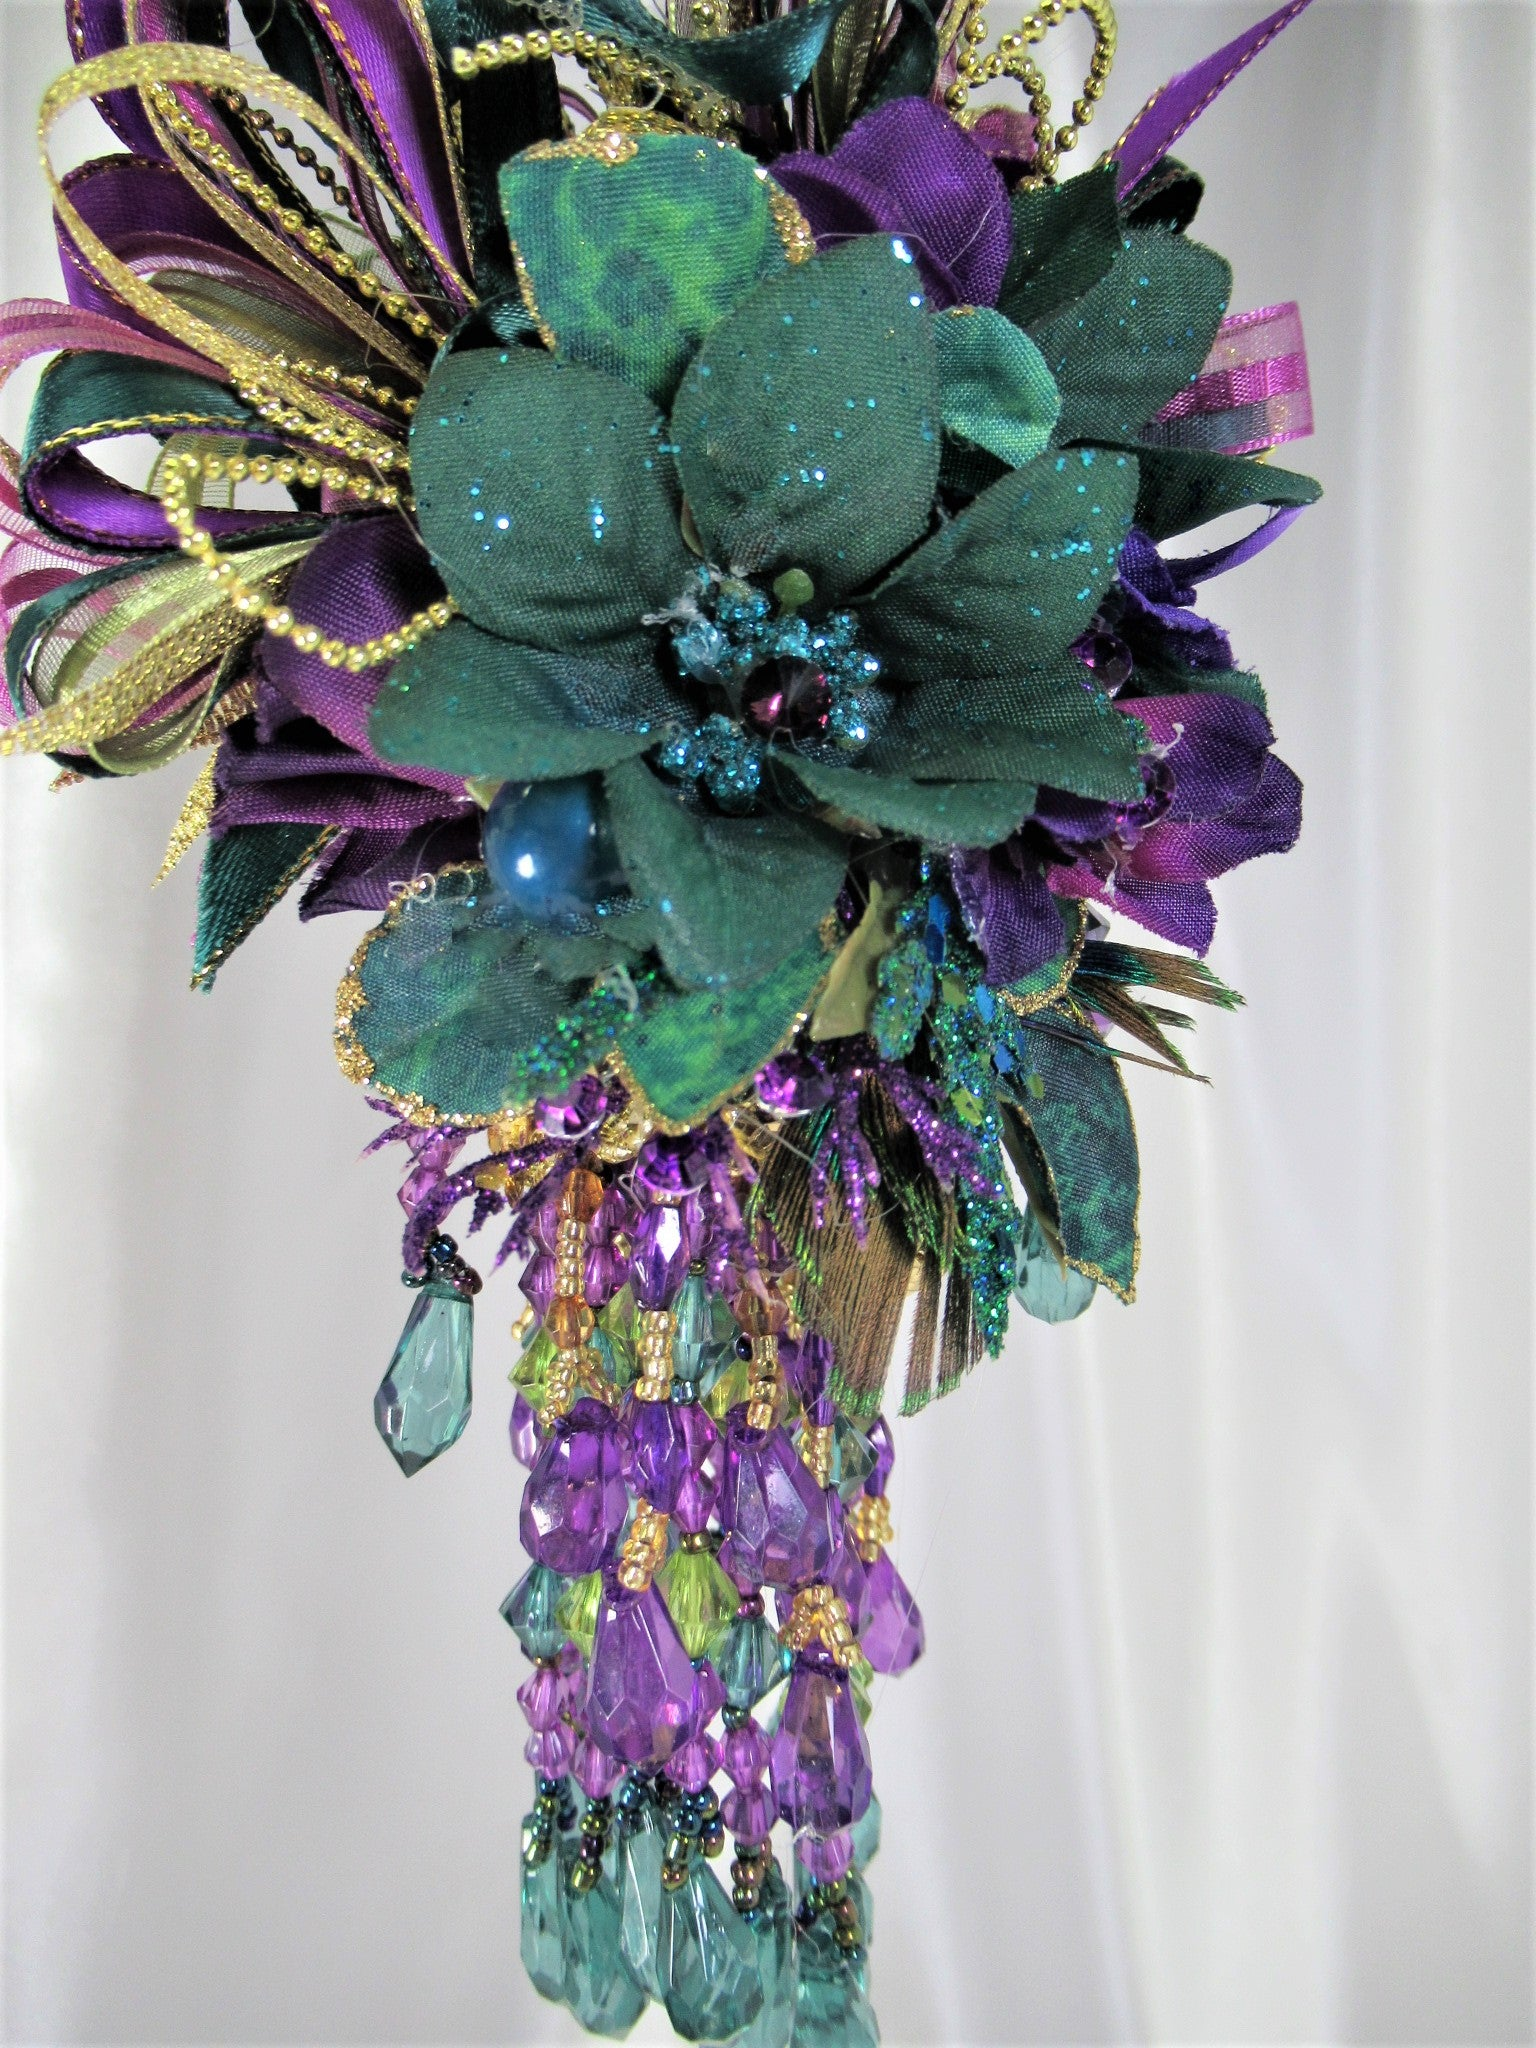 Custom for Nancy - Peacock Green Teal, Purple and Gold Small 7 Inch Beaded Victorian Ornament - Odyssey Creations